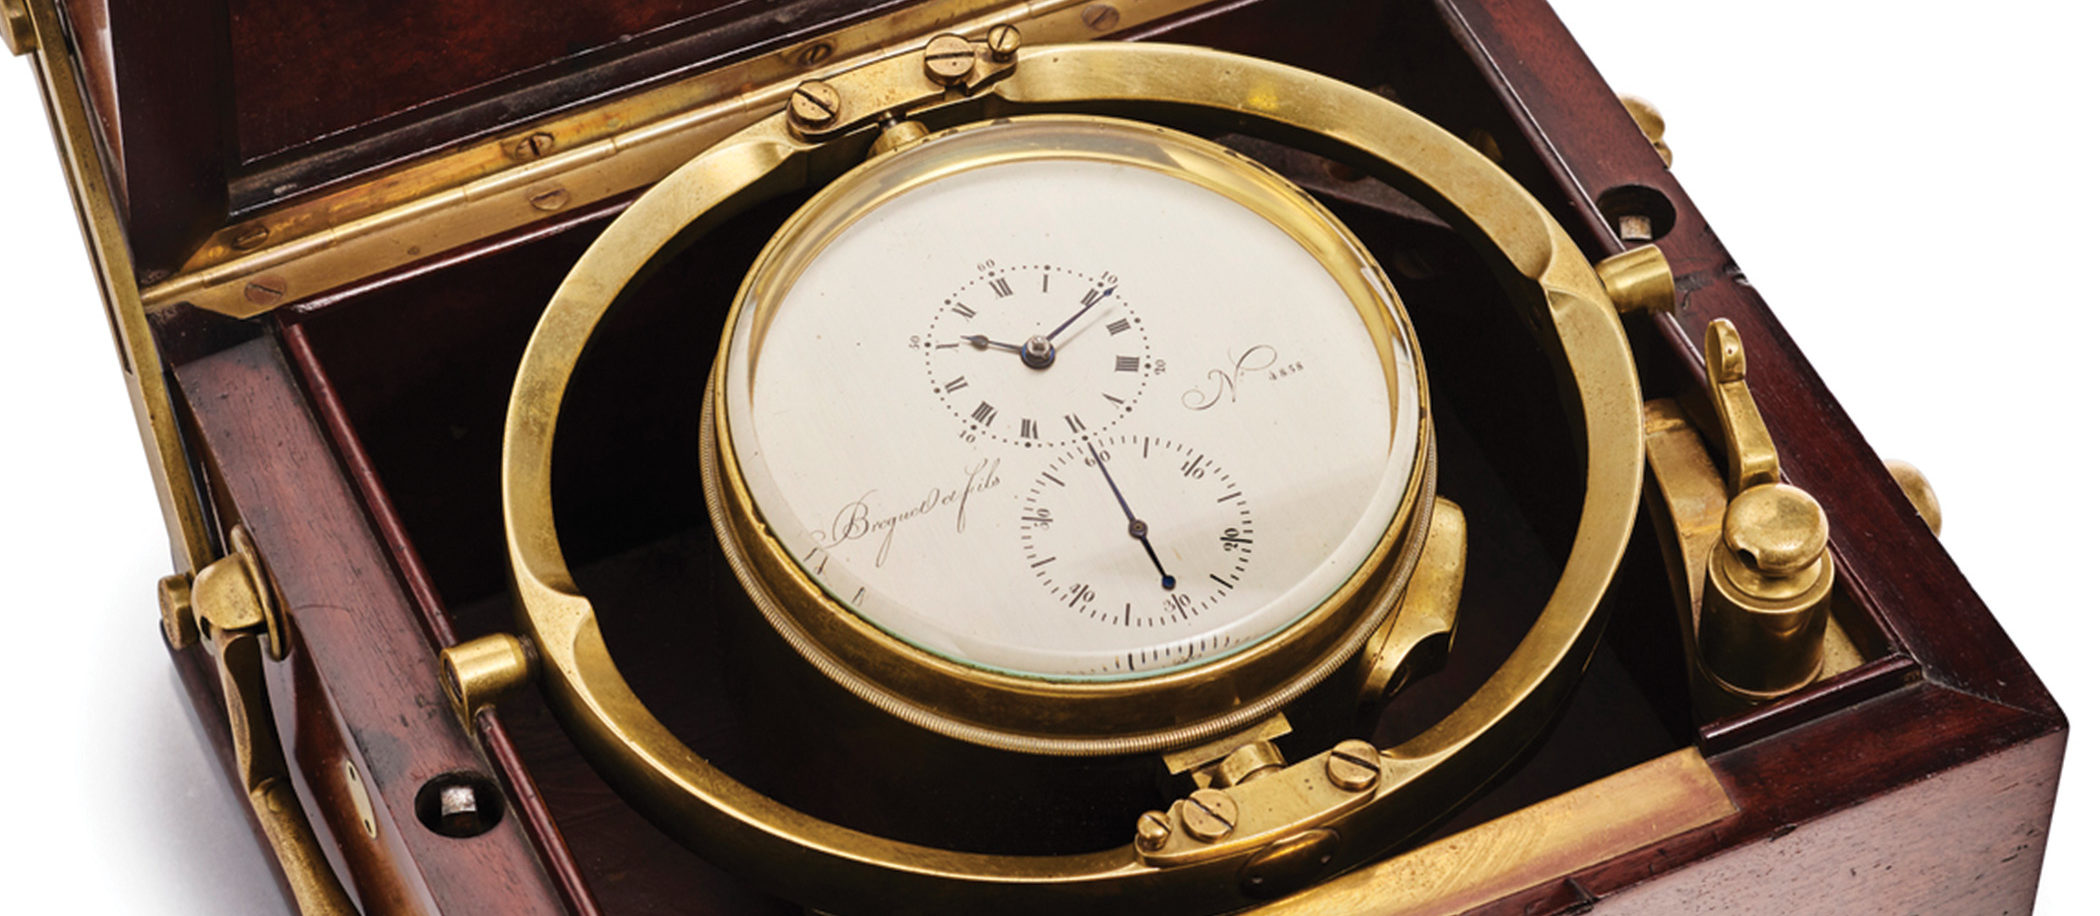 Historia Chronometrów / foto: Antiquorum